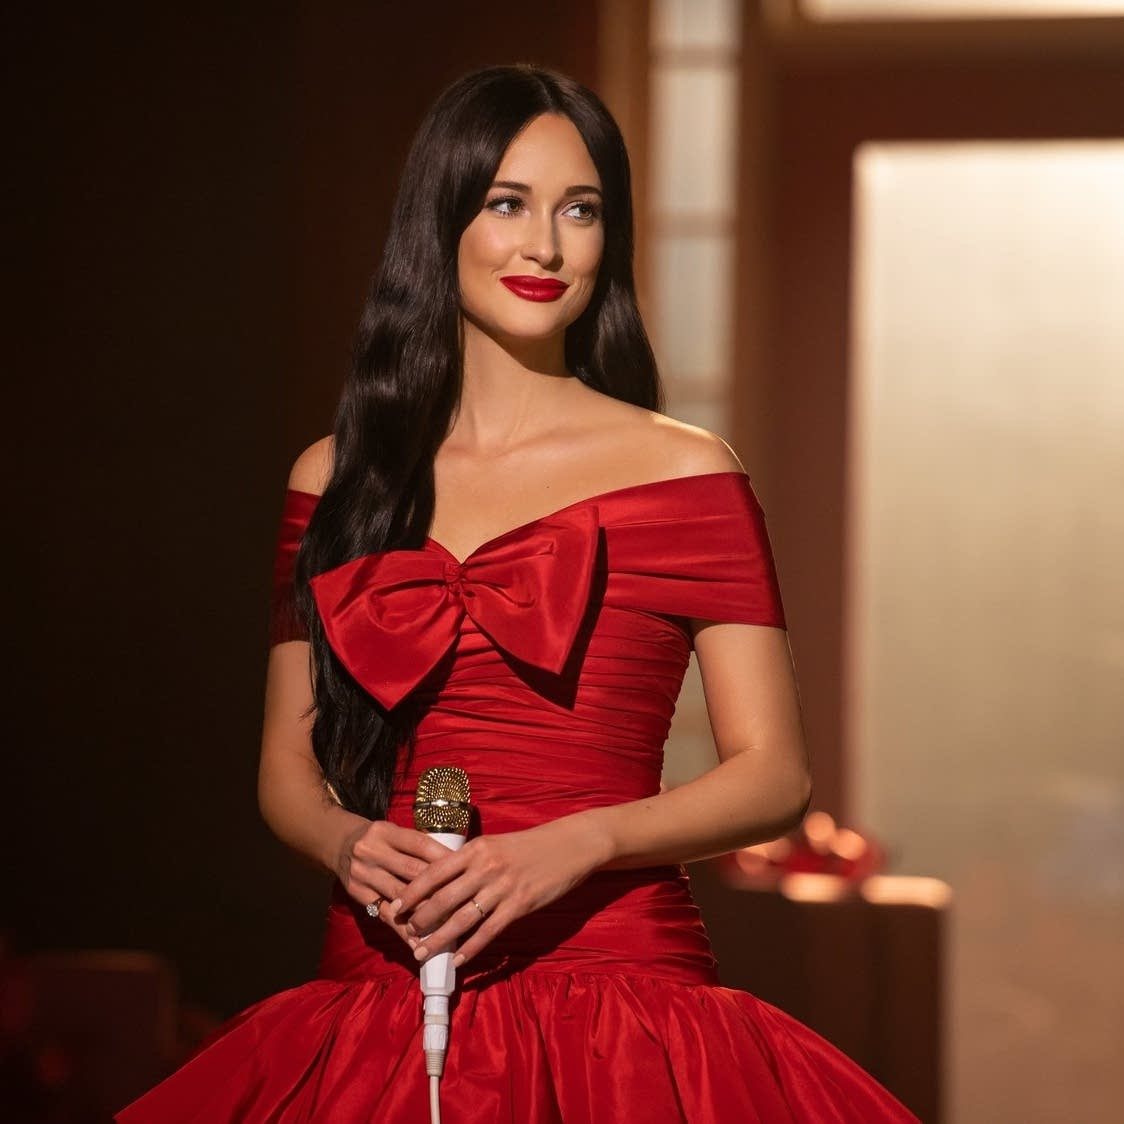 'The Kacey Musgraves Christmas Show' press photo